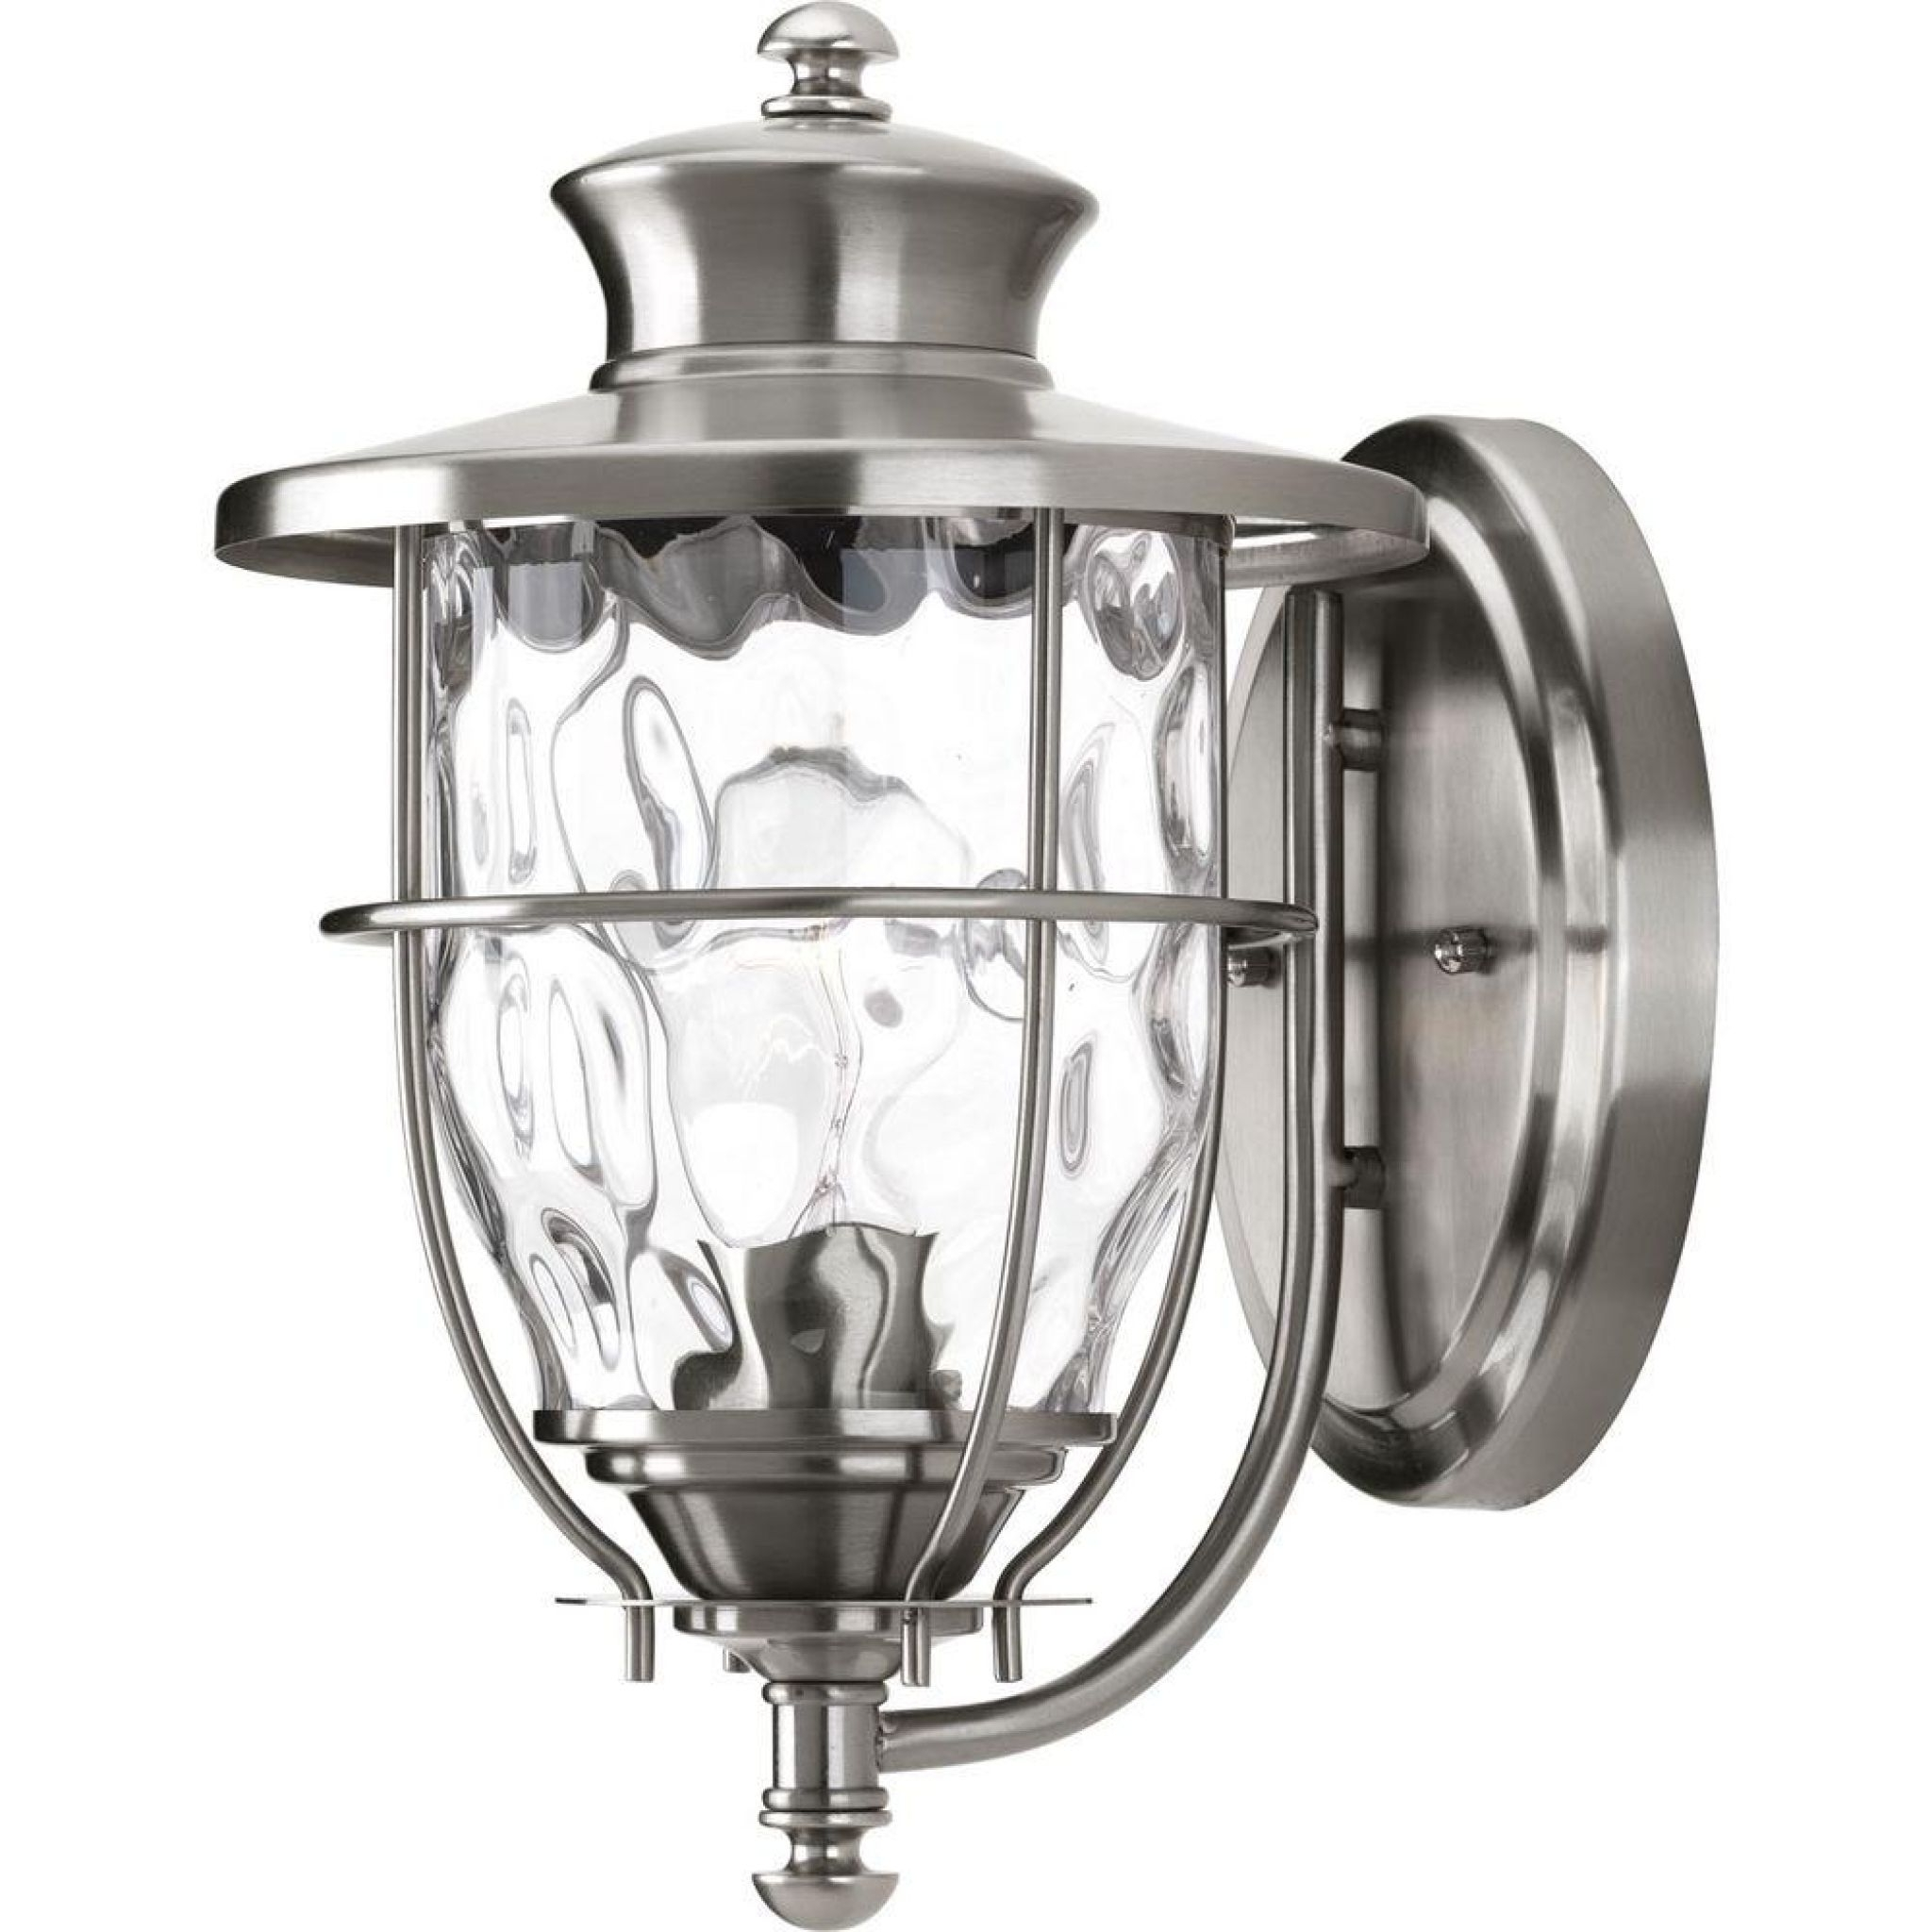 Trendy Nickel Outdoor Lanterns Within Brushed Nickel Outdoor Lights – Favorite Interior Paint Colors Check (View 18 of 20)